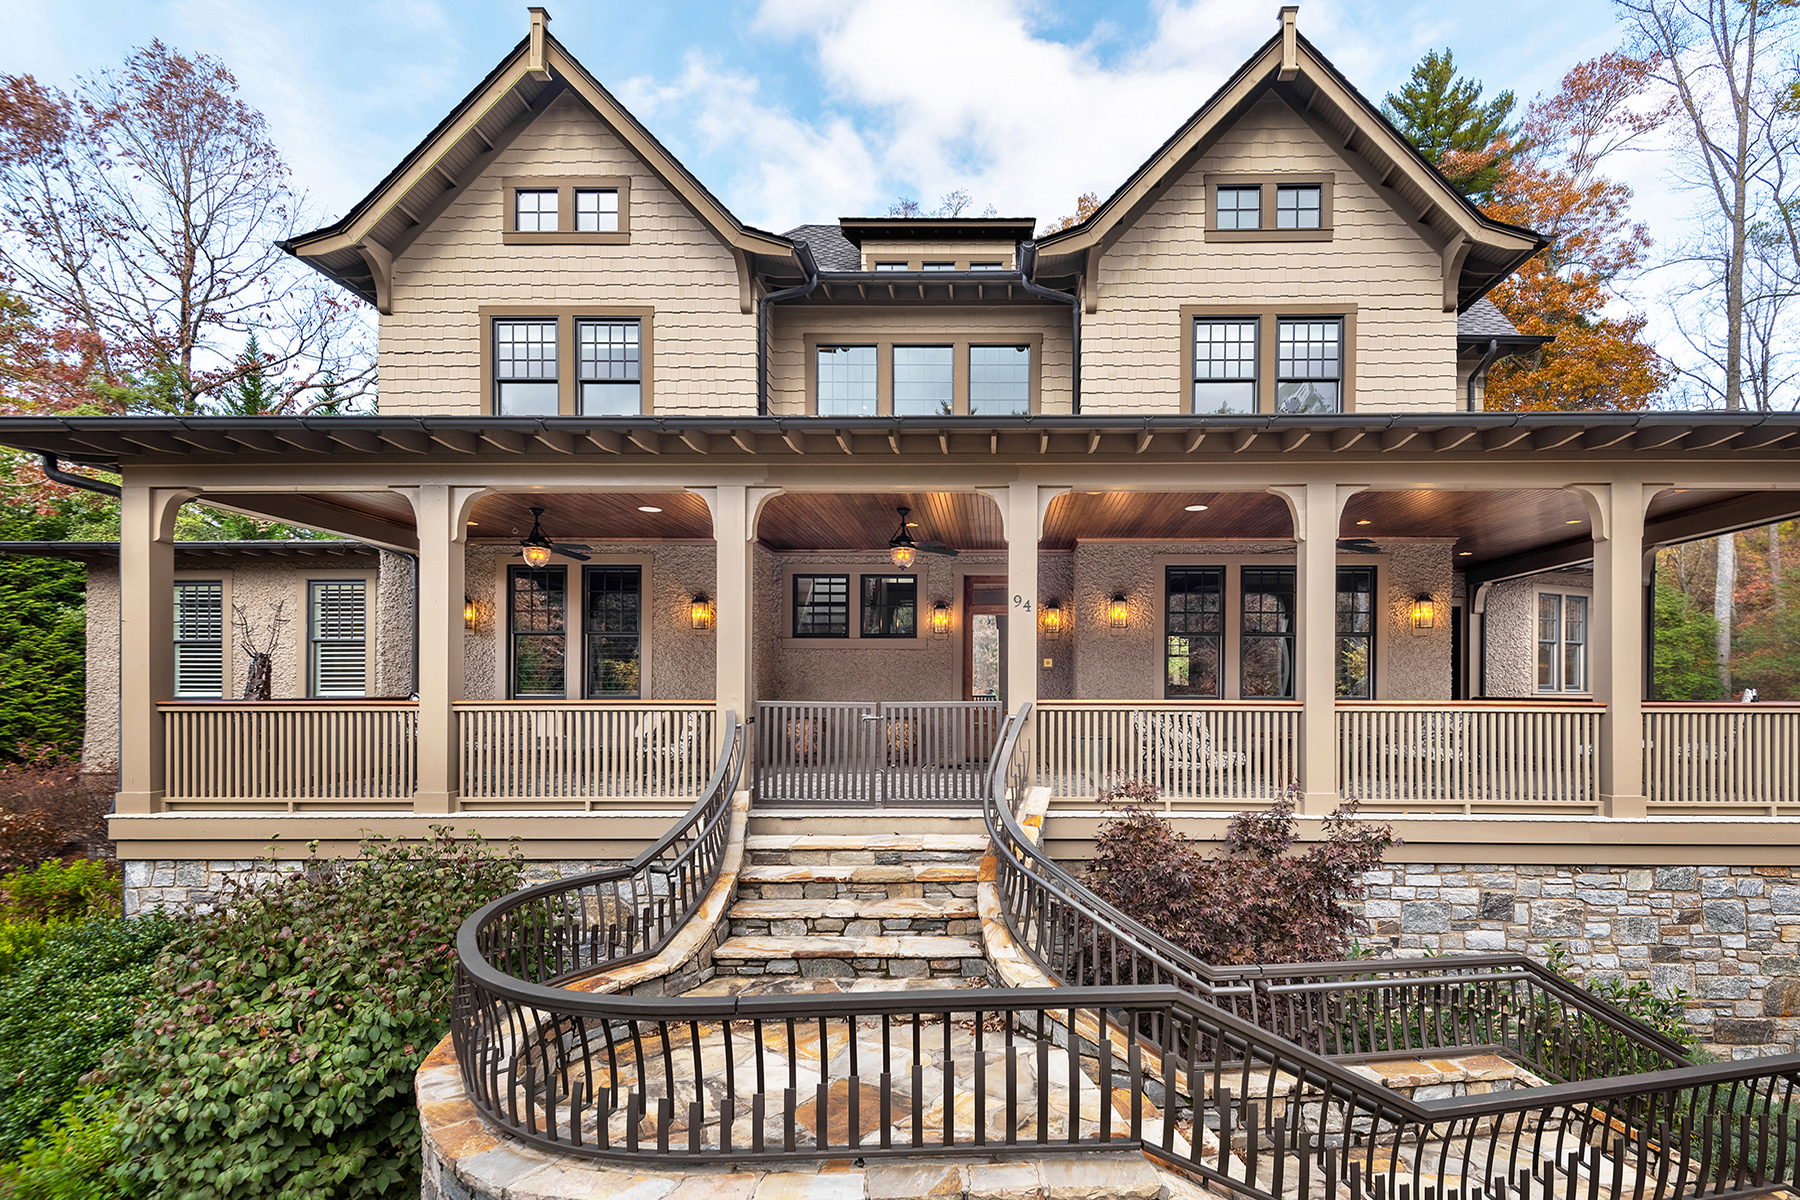 Single Family Home for Active at RAMBLE BILTMORE FOREST 94 Ramble Way Asheville, North Carolina 28803 United States